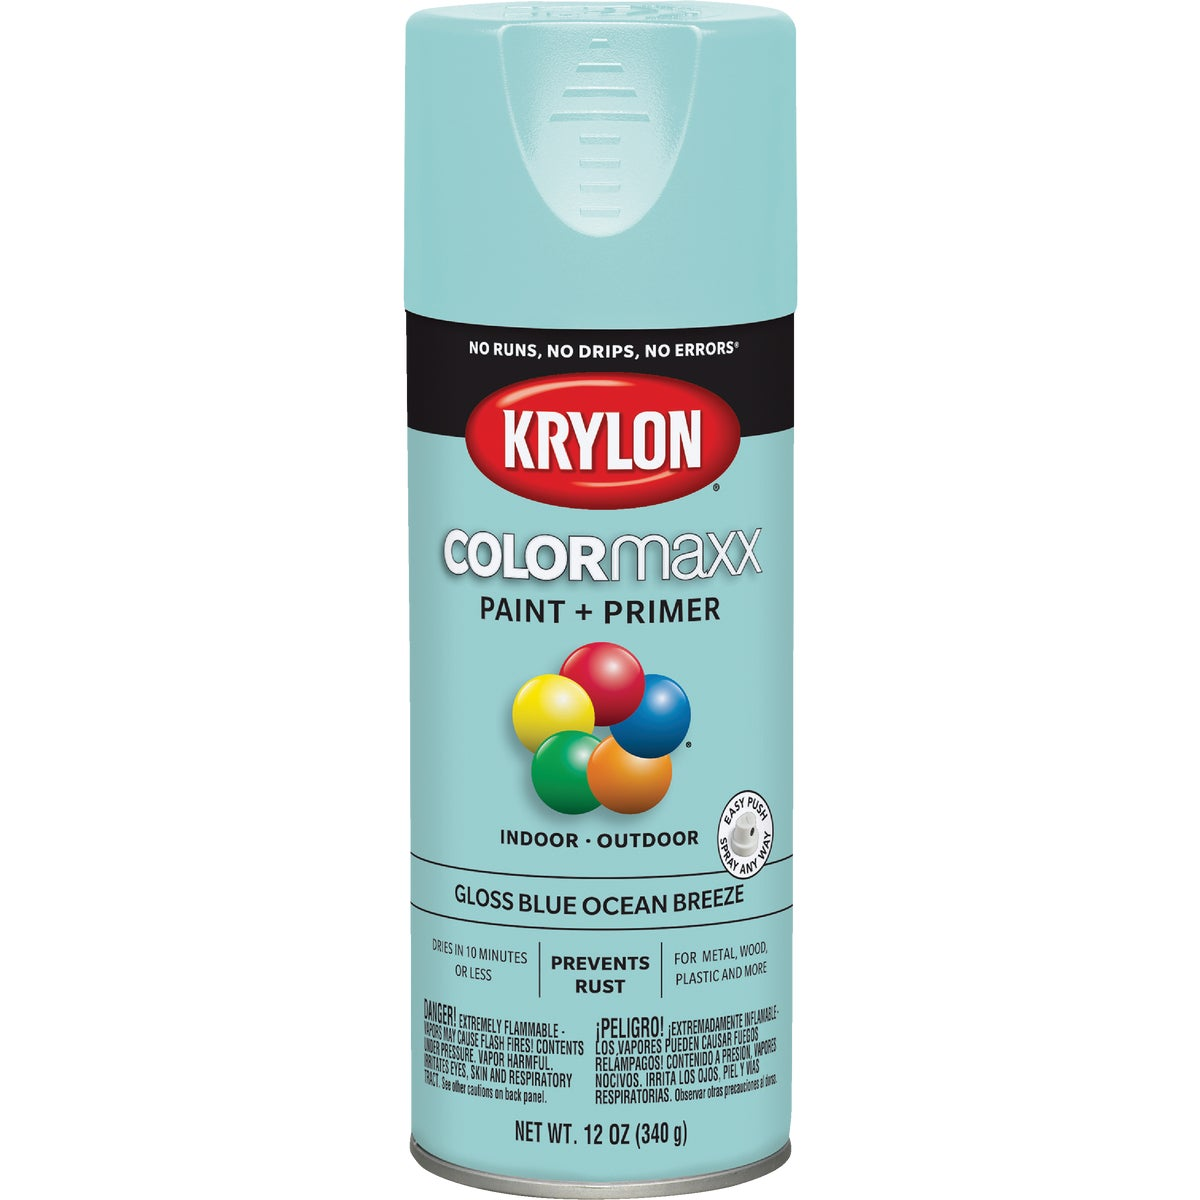 GL OCEAN BRZ SPRAY PAINT - 51512 by Krylon/consumer Div